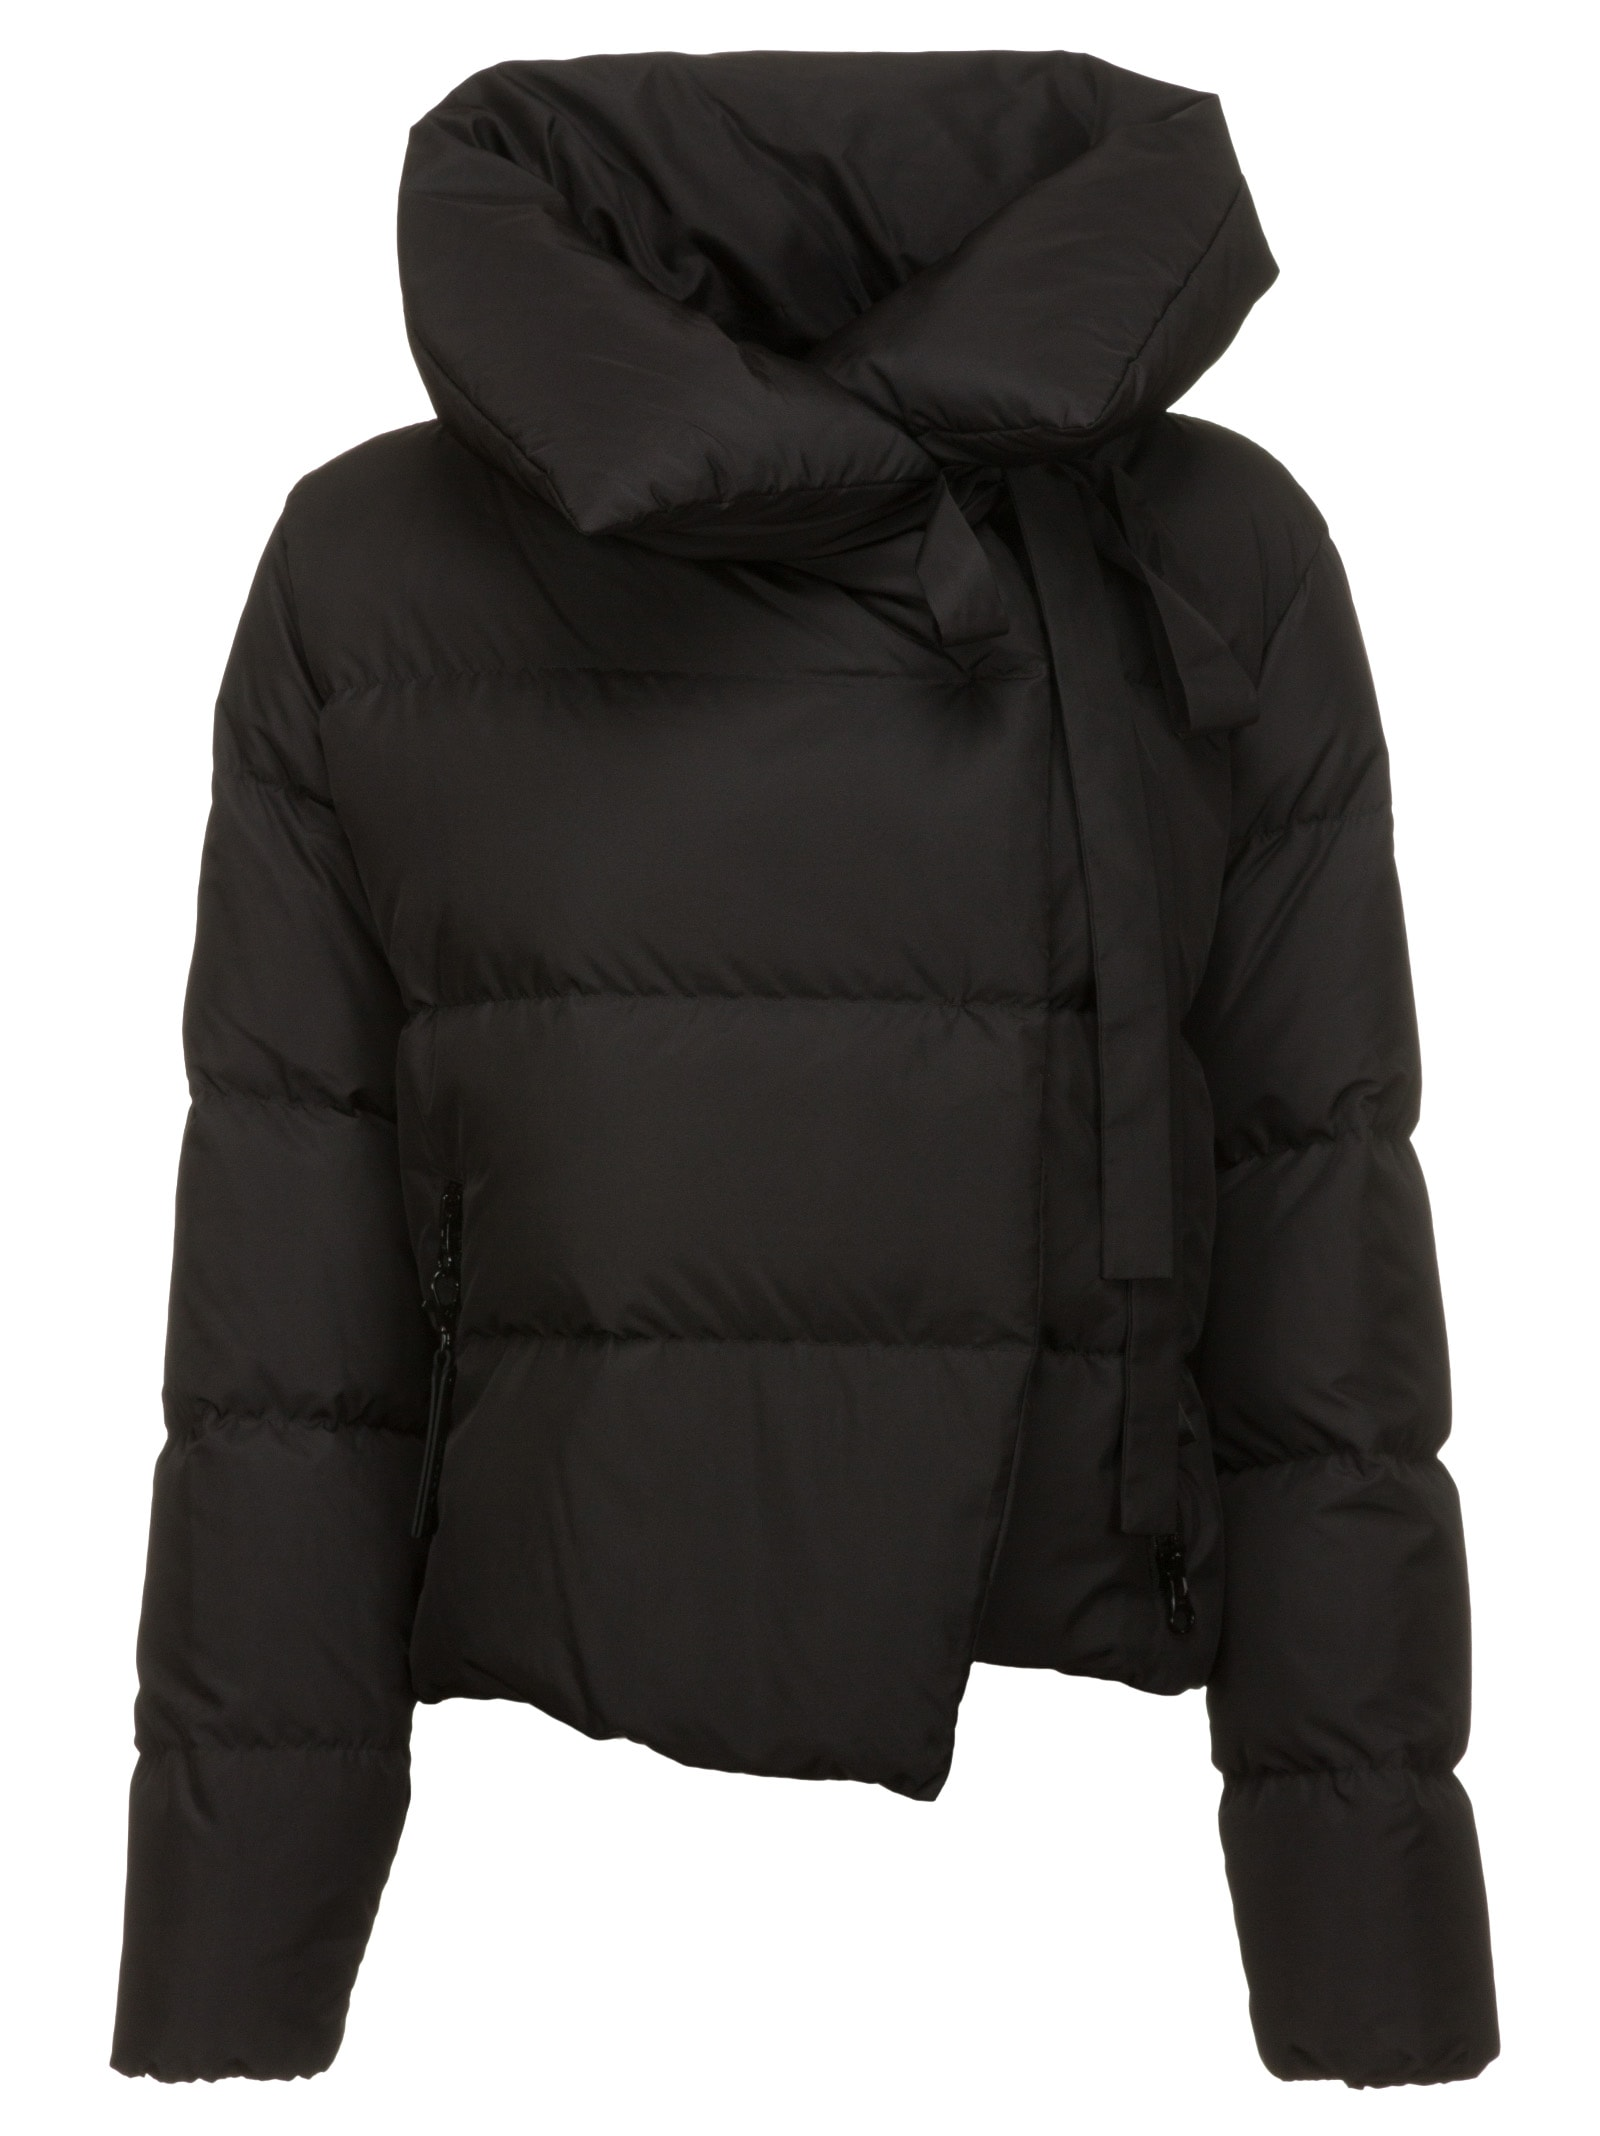 Bacon Puffa Down Jacket